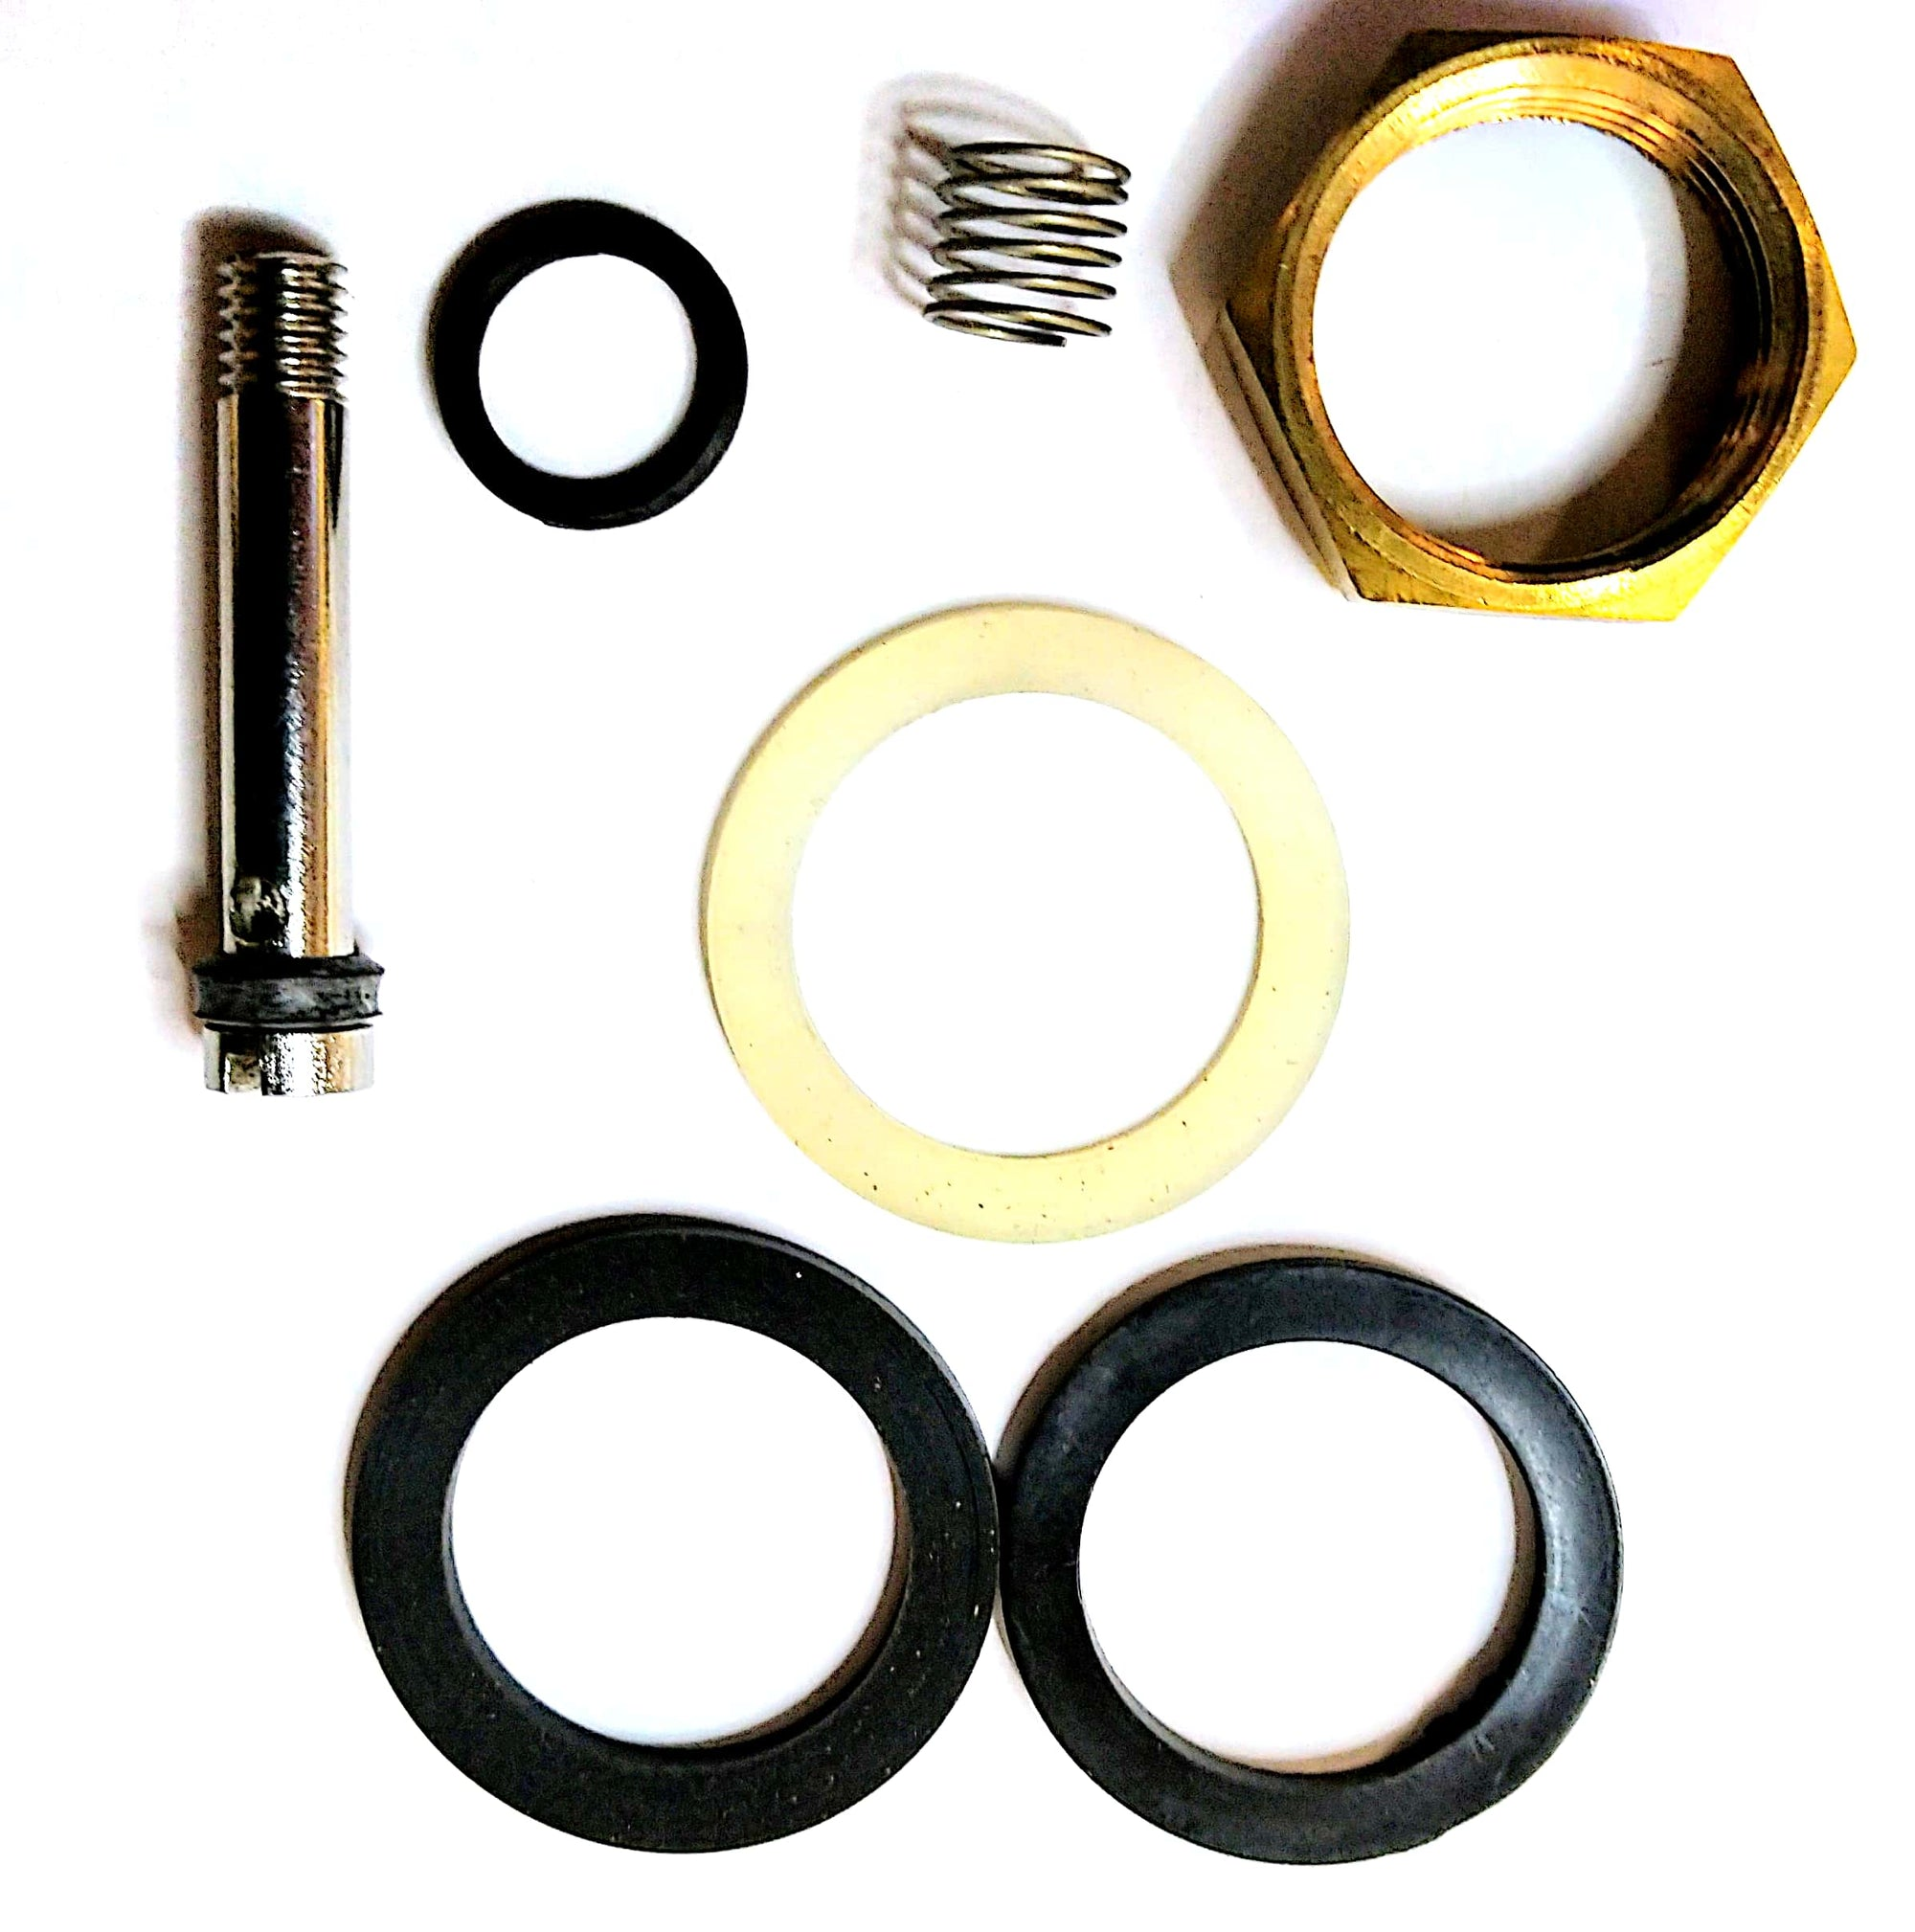 2018 Version Rebuild Kit for Glass Rinser for Draft Beer Drip Trays